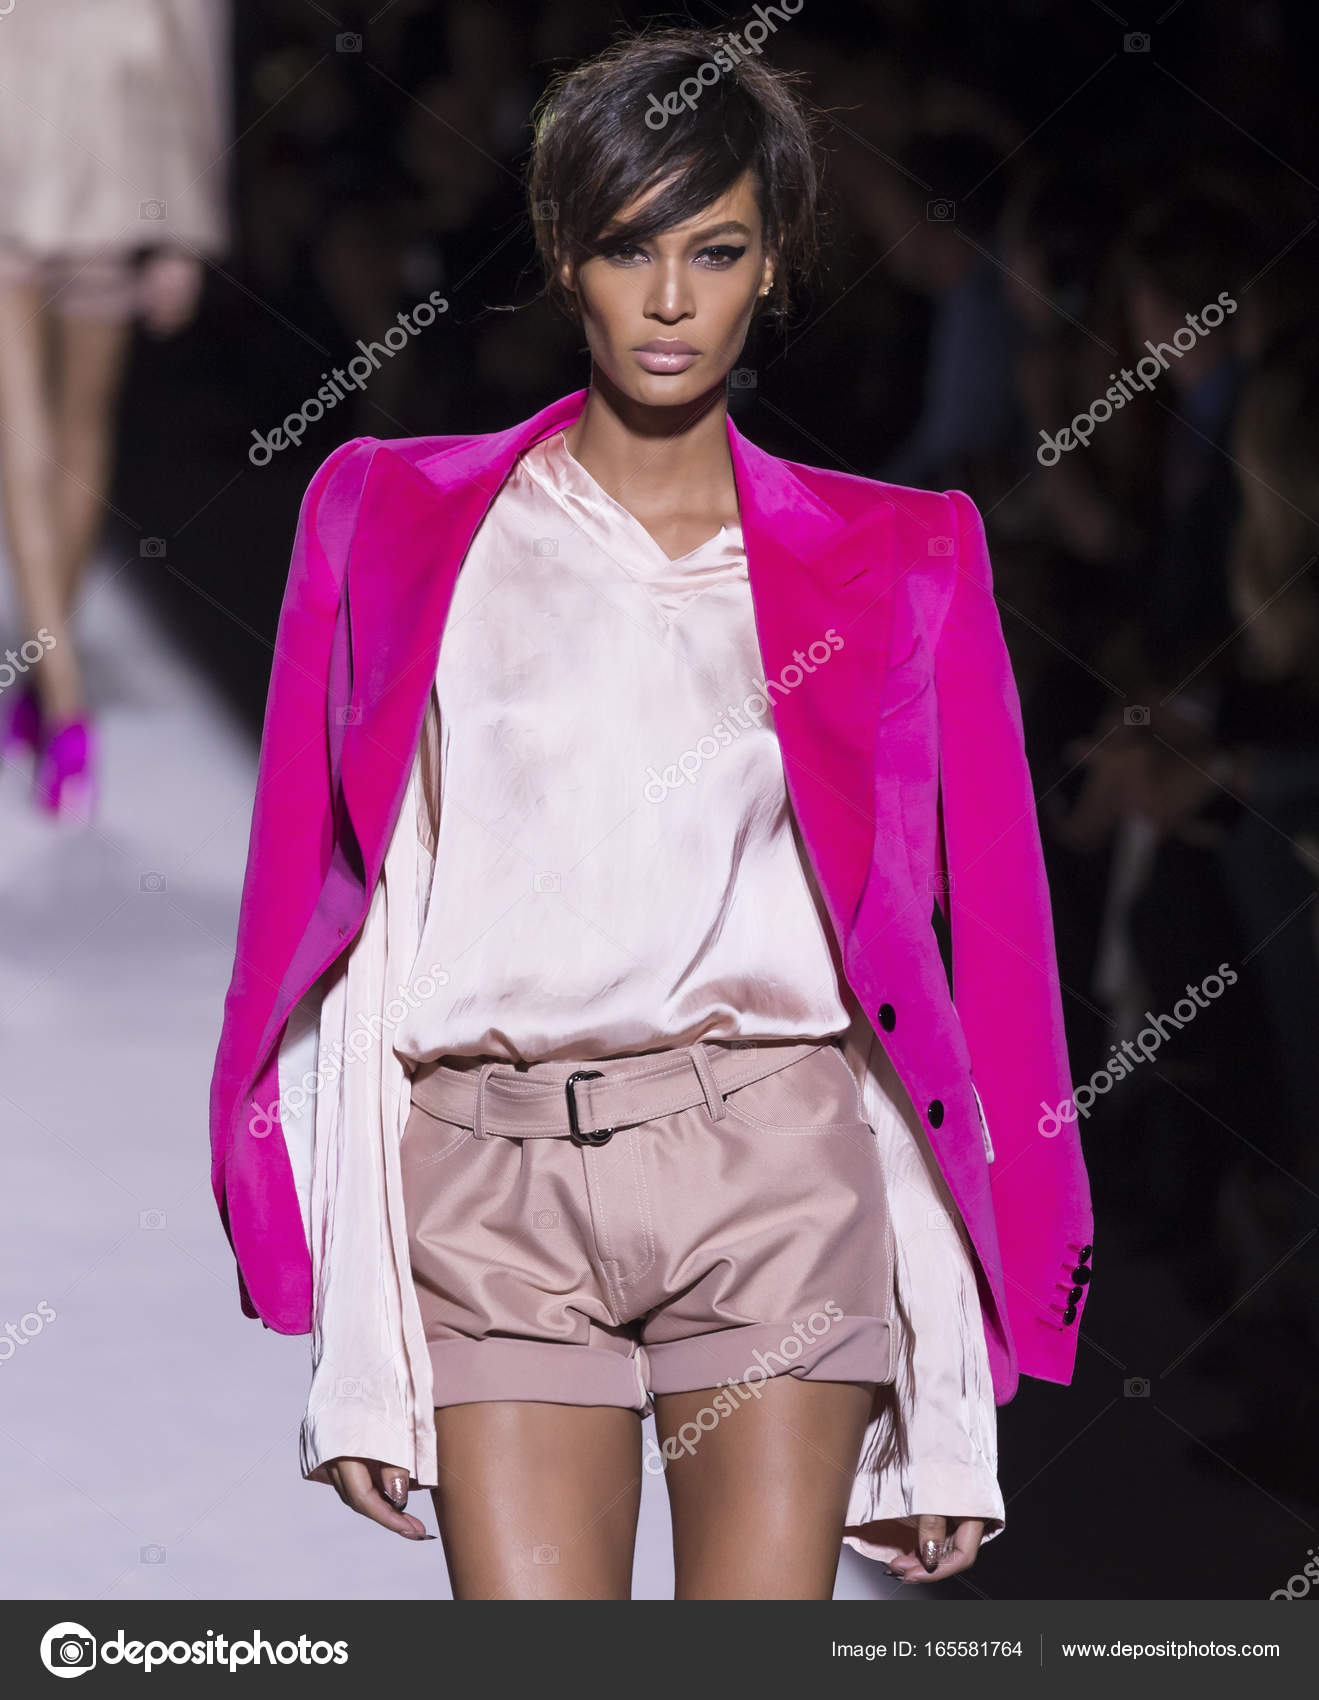 76e1533c5 NEW YORK, NY - September 06, 2017: Joan Smalls walks the runway at the Tom  Ford Spring Summer 2018 fashion show during New York Fashion Week — Photo  by ...